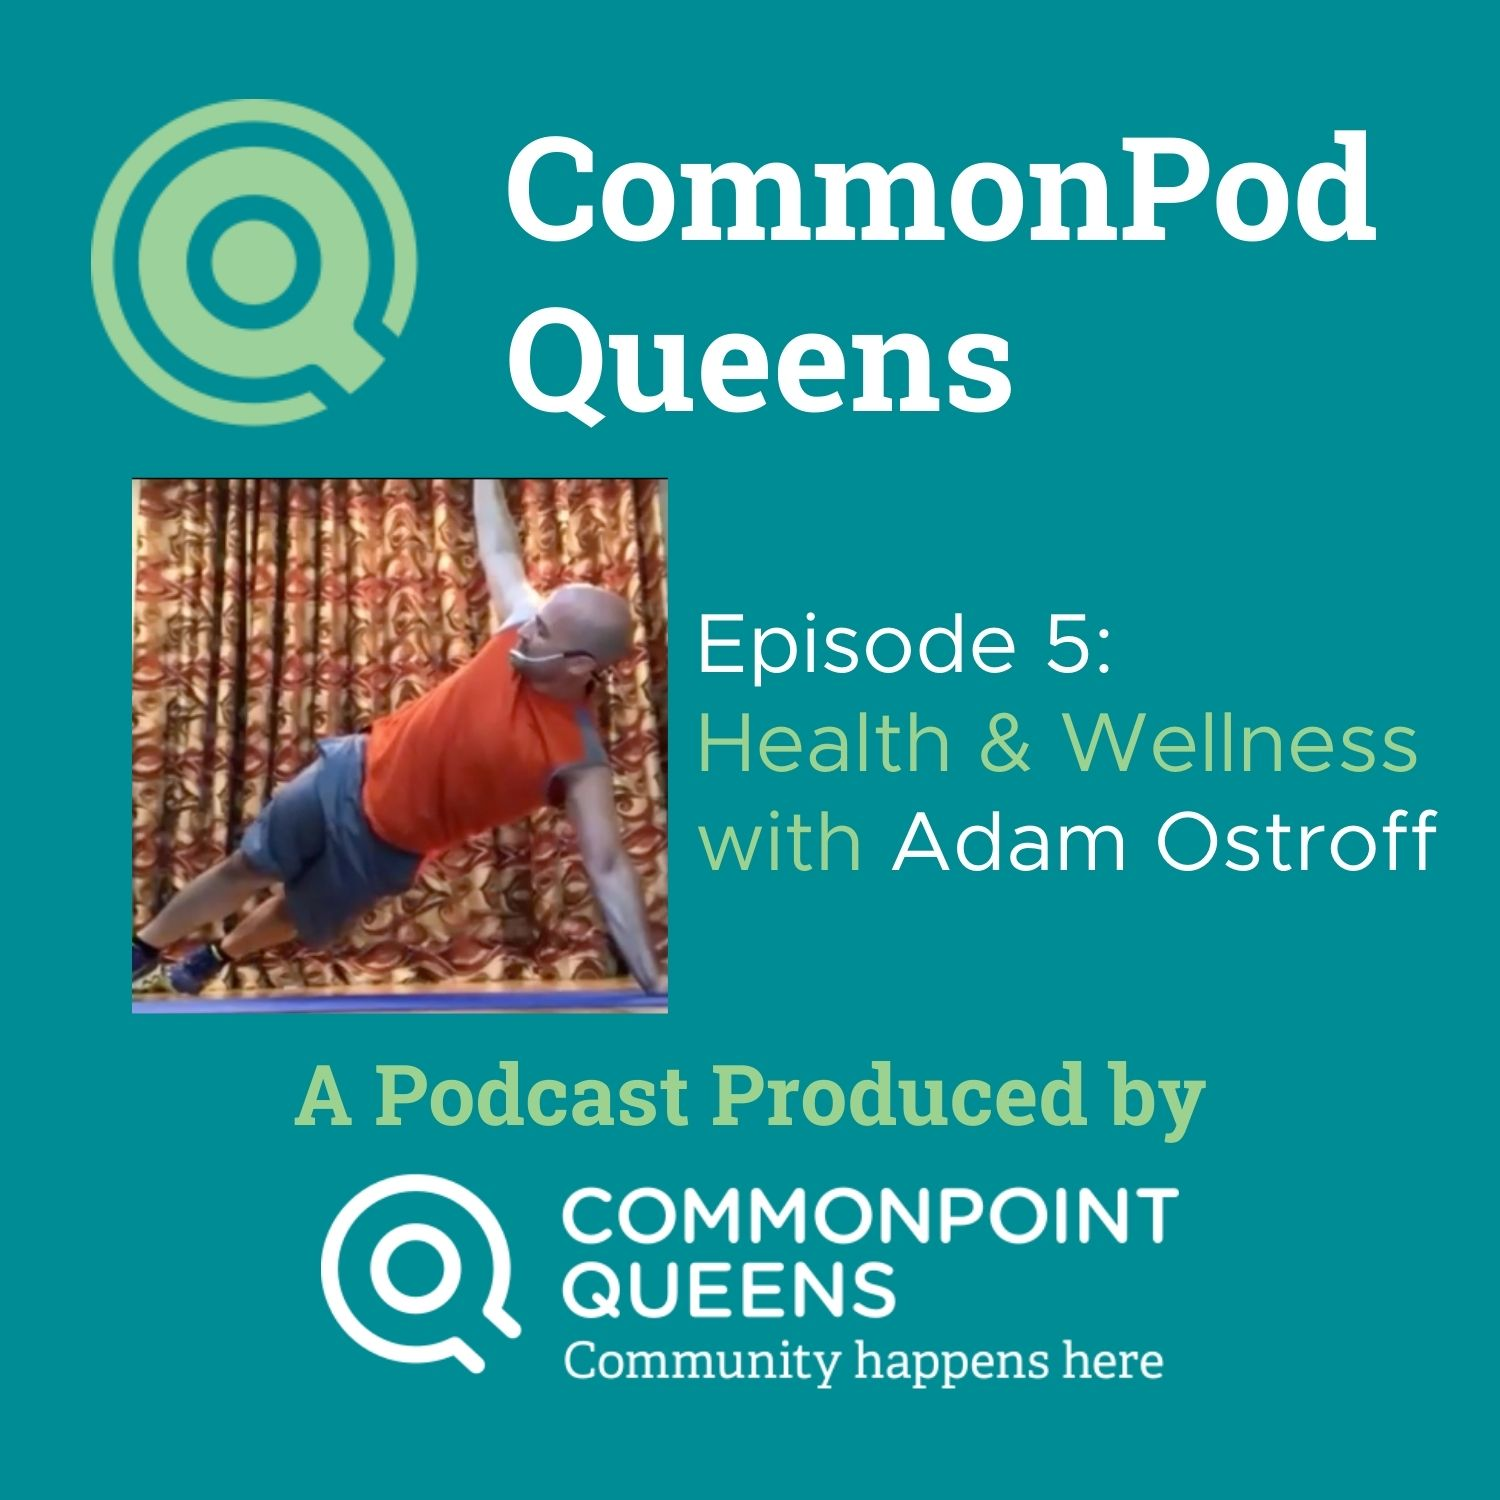 CommonPod Queens Episode 5: Health and Wellness with Adam Ostroff